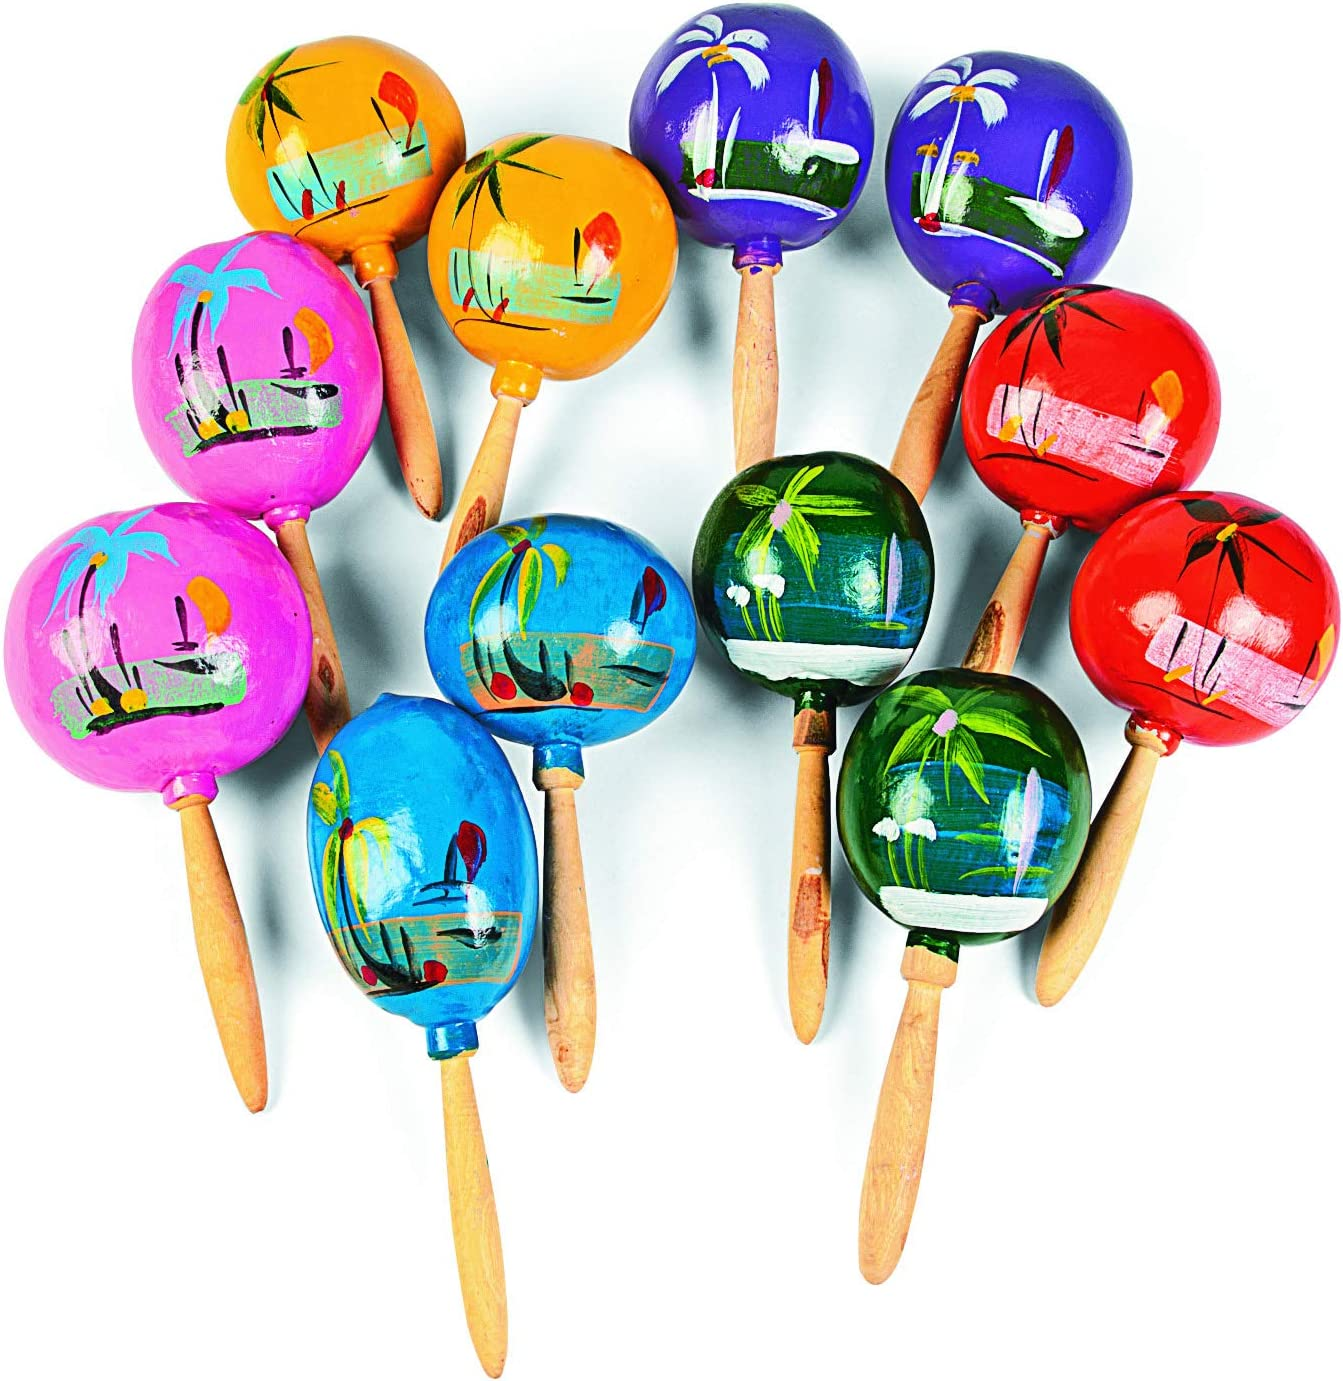 Maracas for Kids and Adults - Painted Mara Hand Authentic Surprise price Selling rankings Wooden